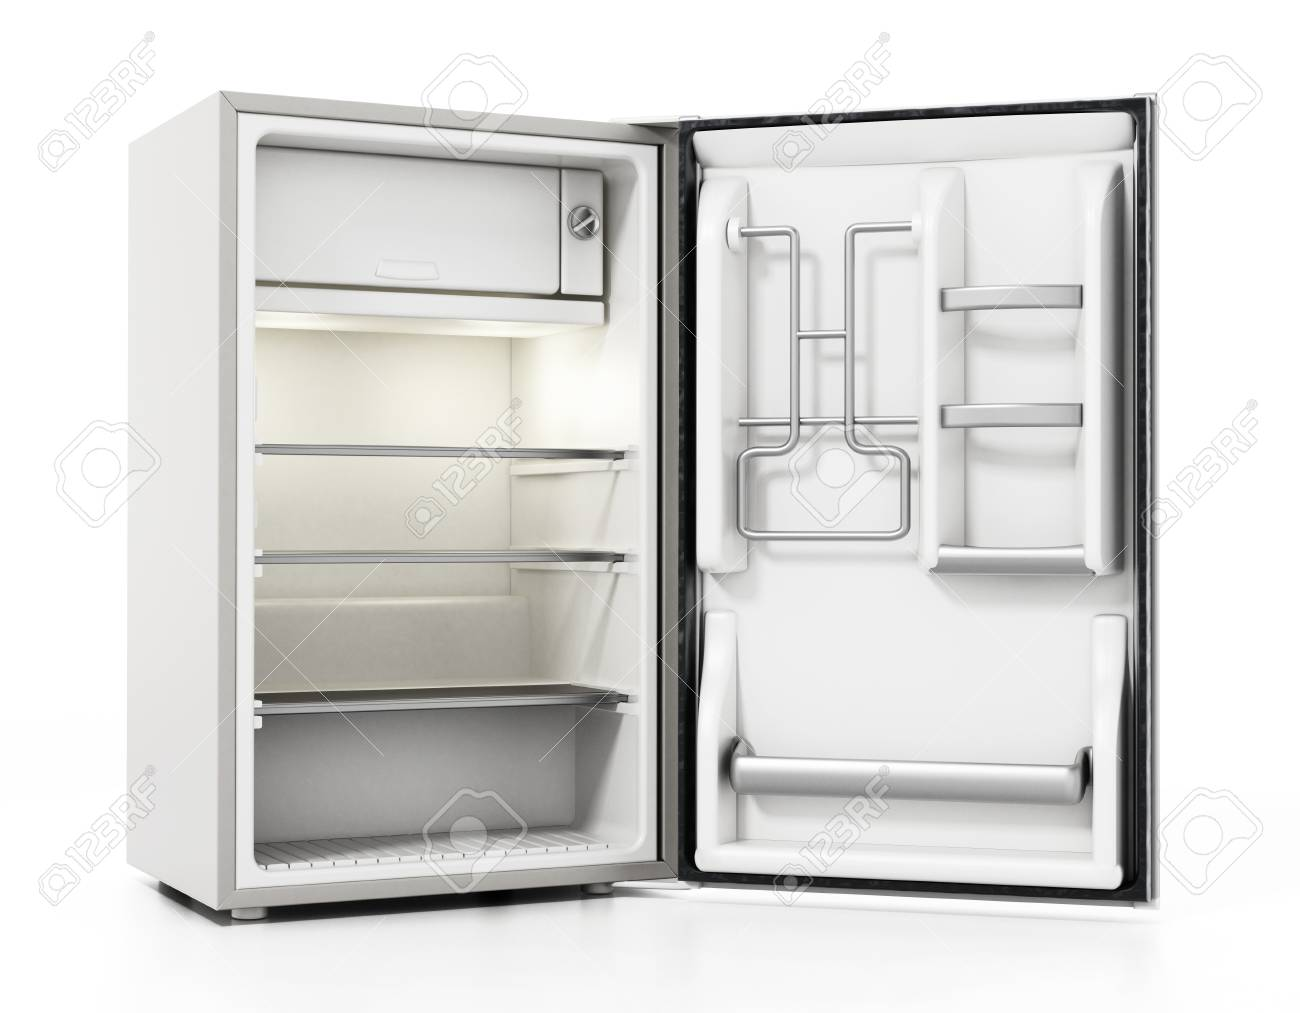 Small size hotel refrigerator isolated on white background. 3D illustration. - 123402771